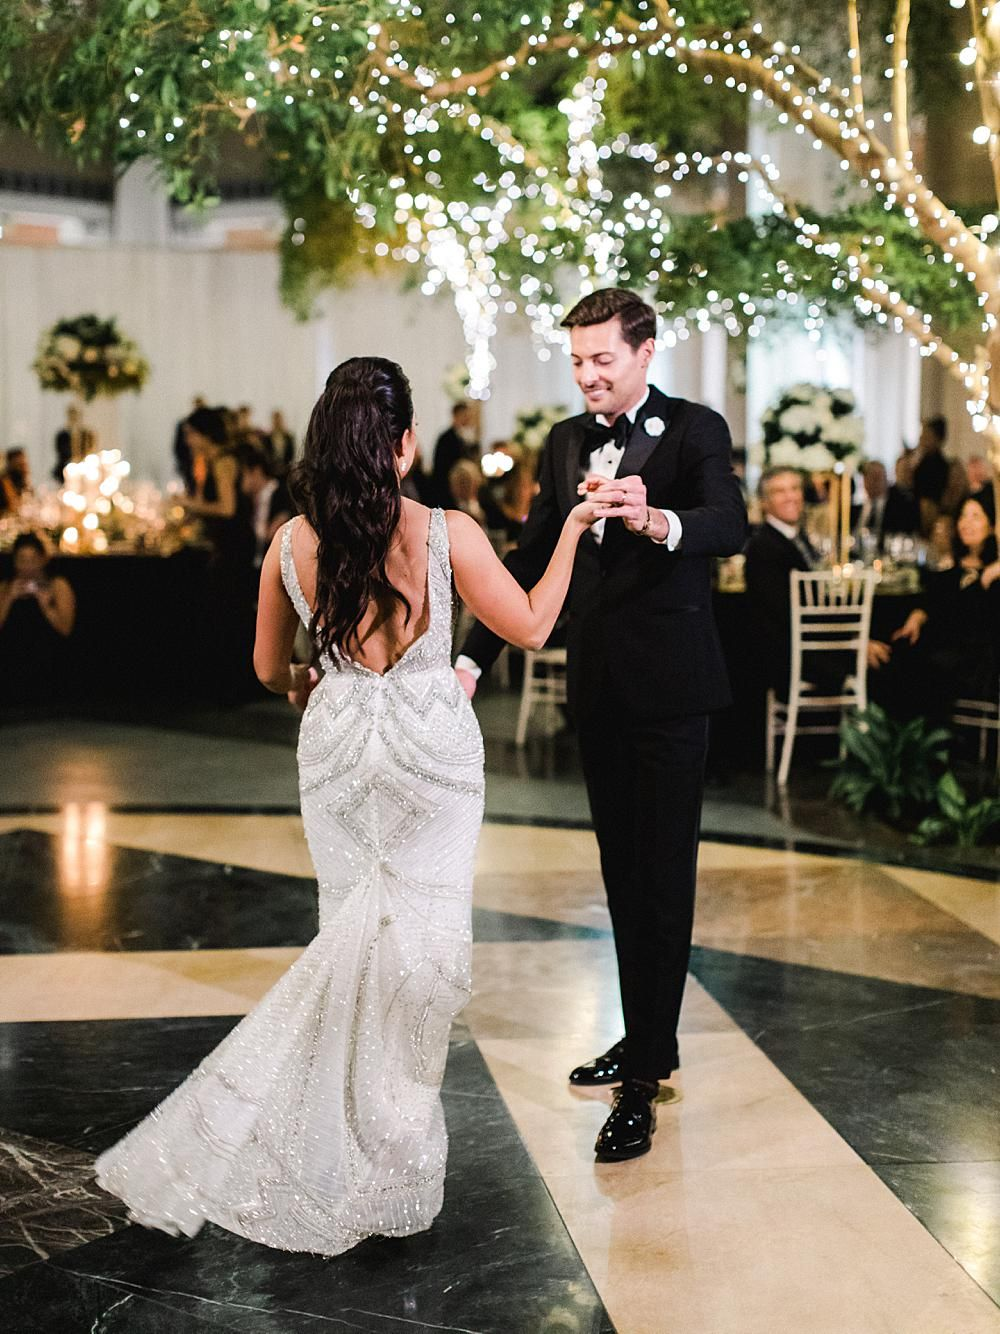 New Year S Eve Wintergarden Wedding Rochester Ny In 2020 New Years Eve Weddings Wedding New Years Eve